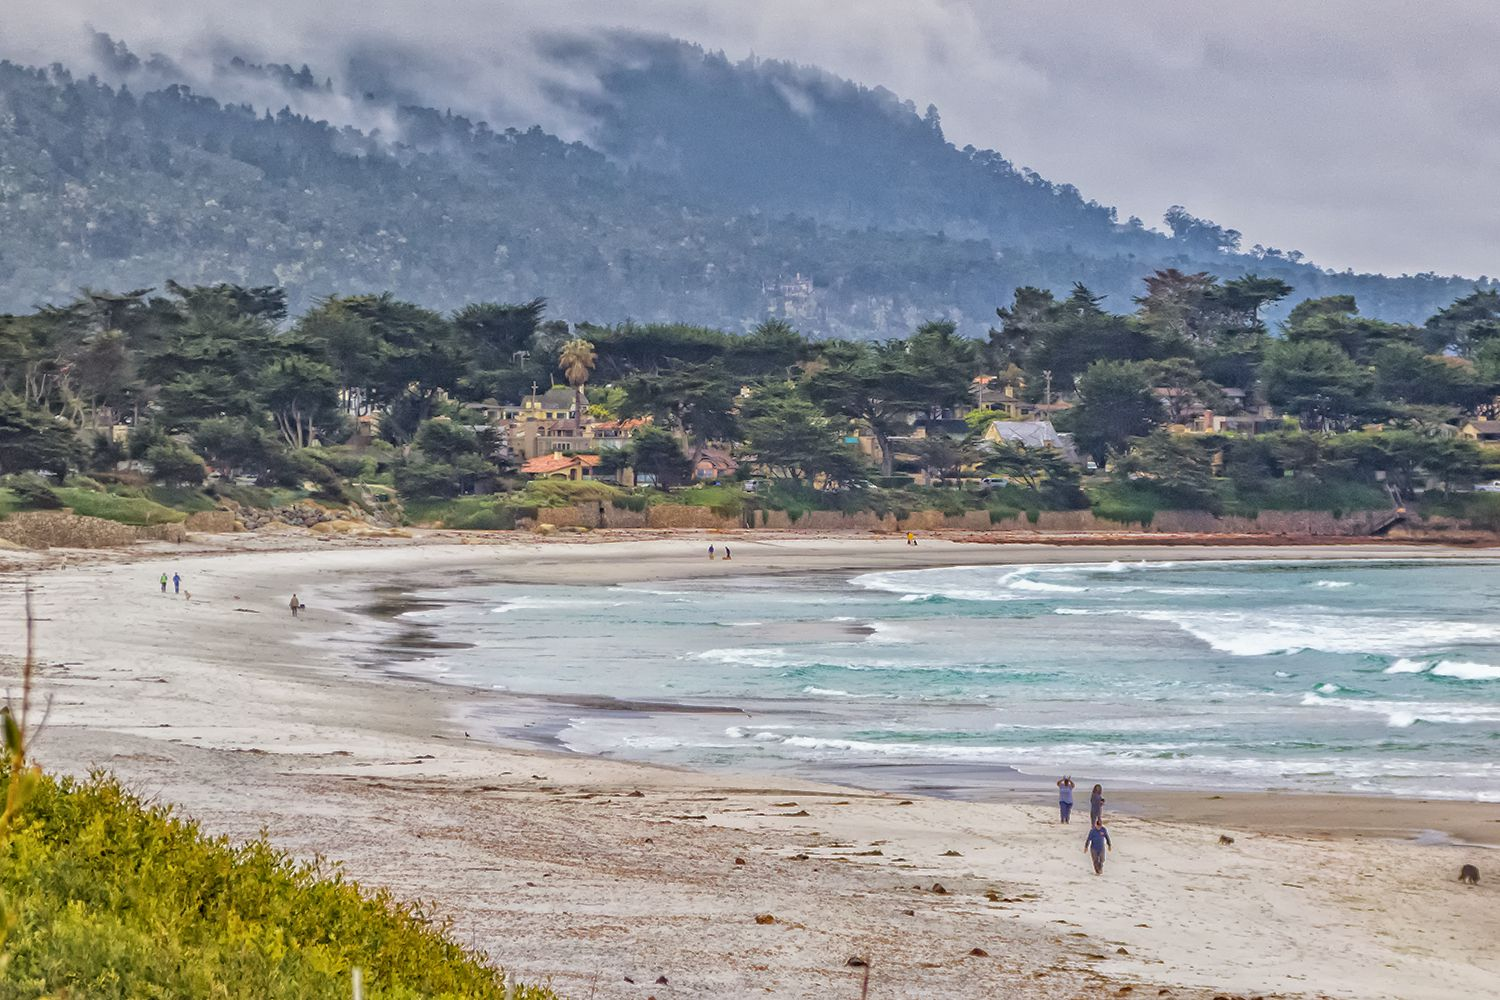 The Top 11 Things to Do in Carmel, California